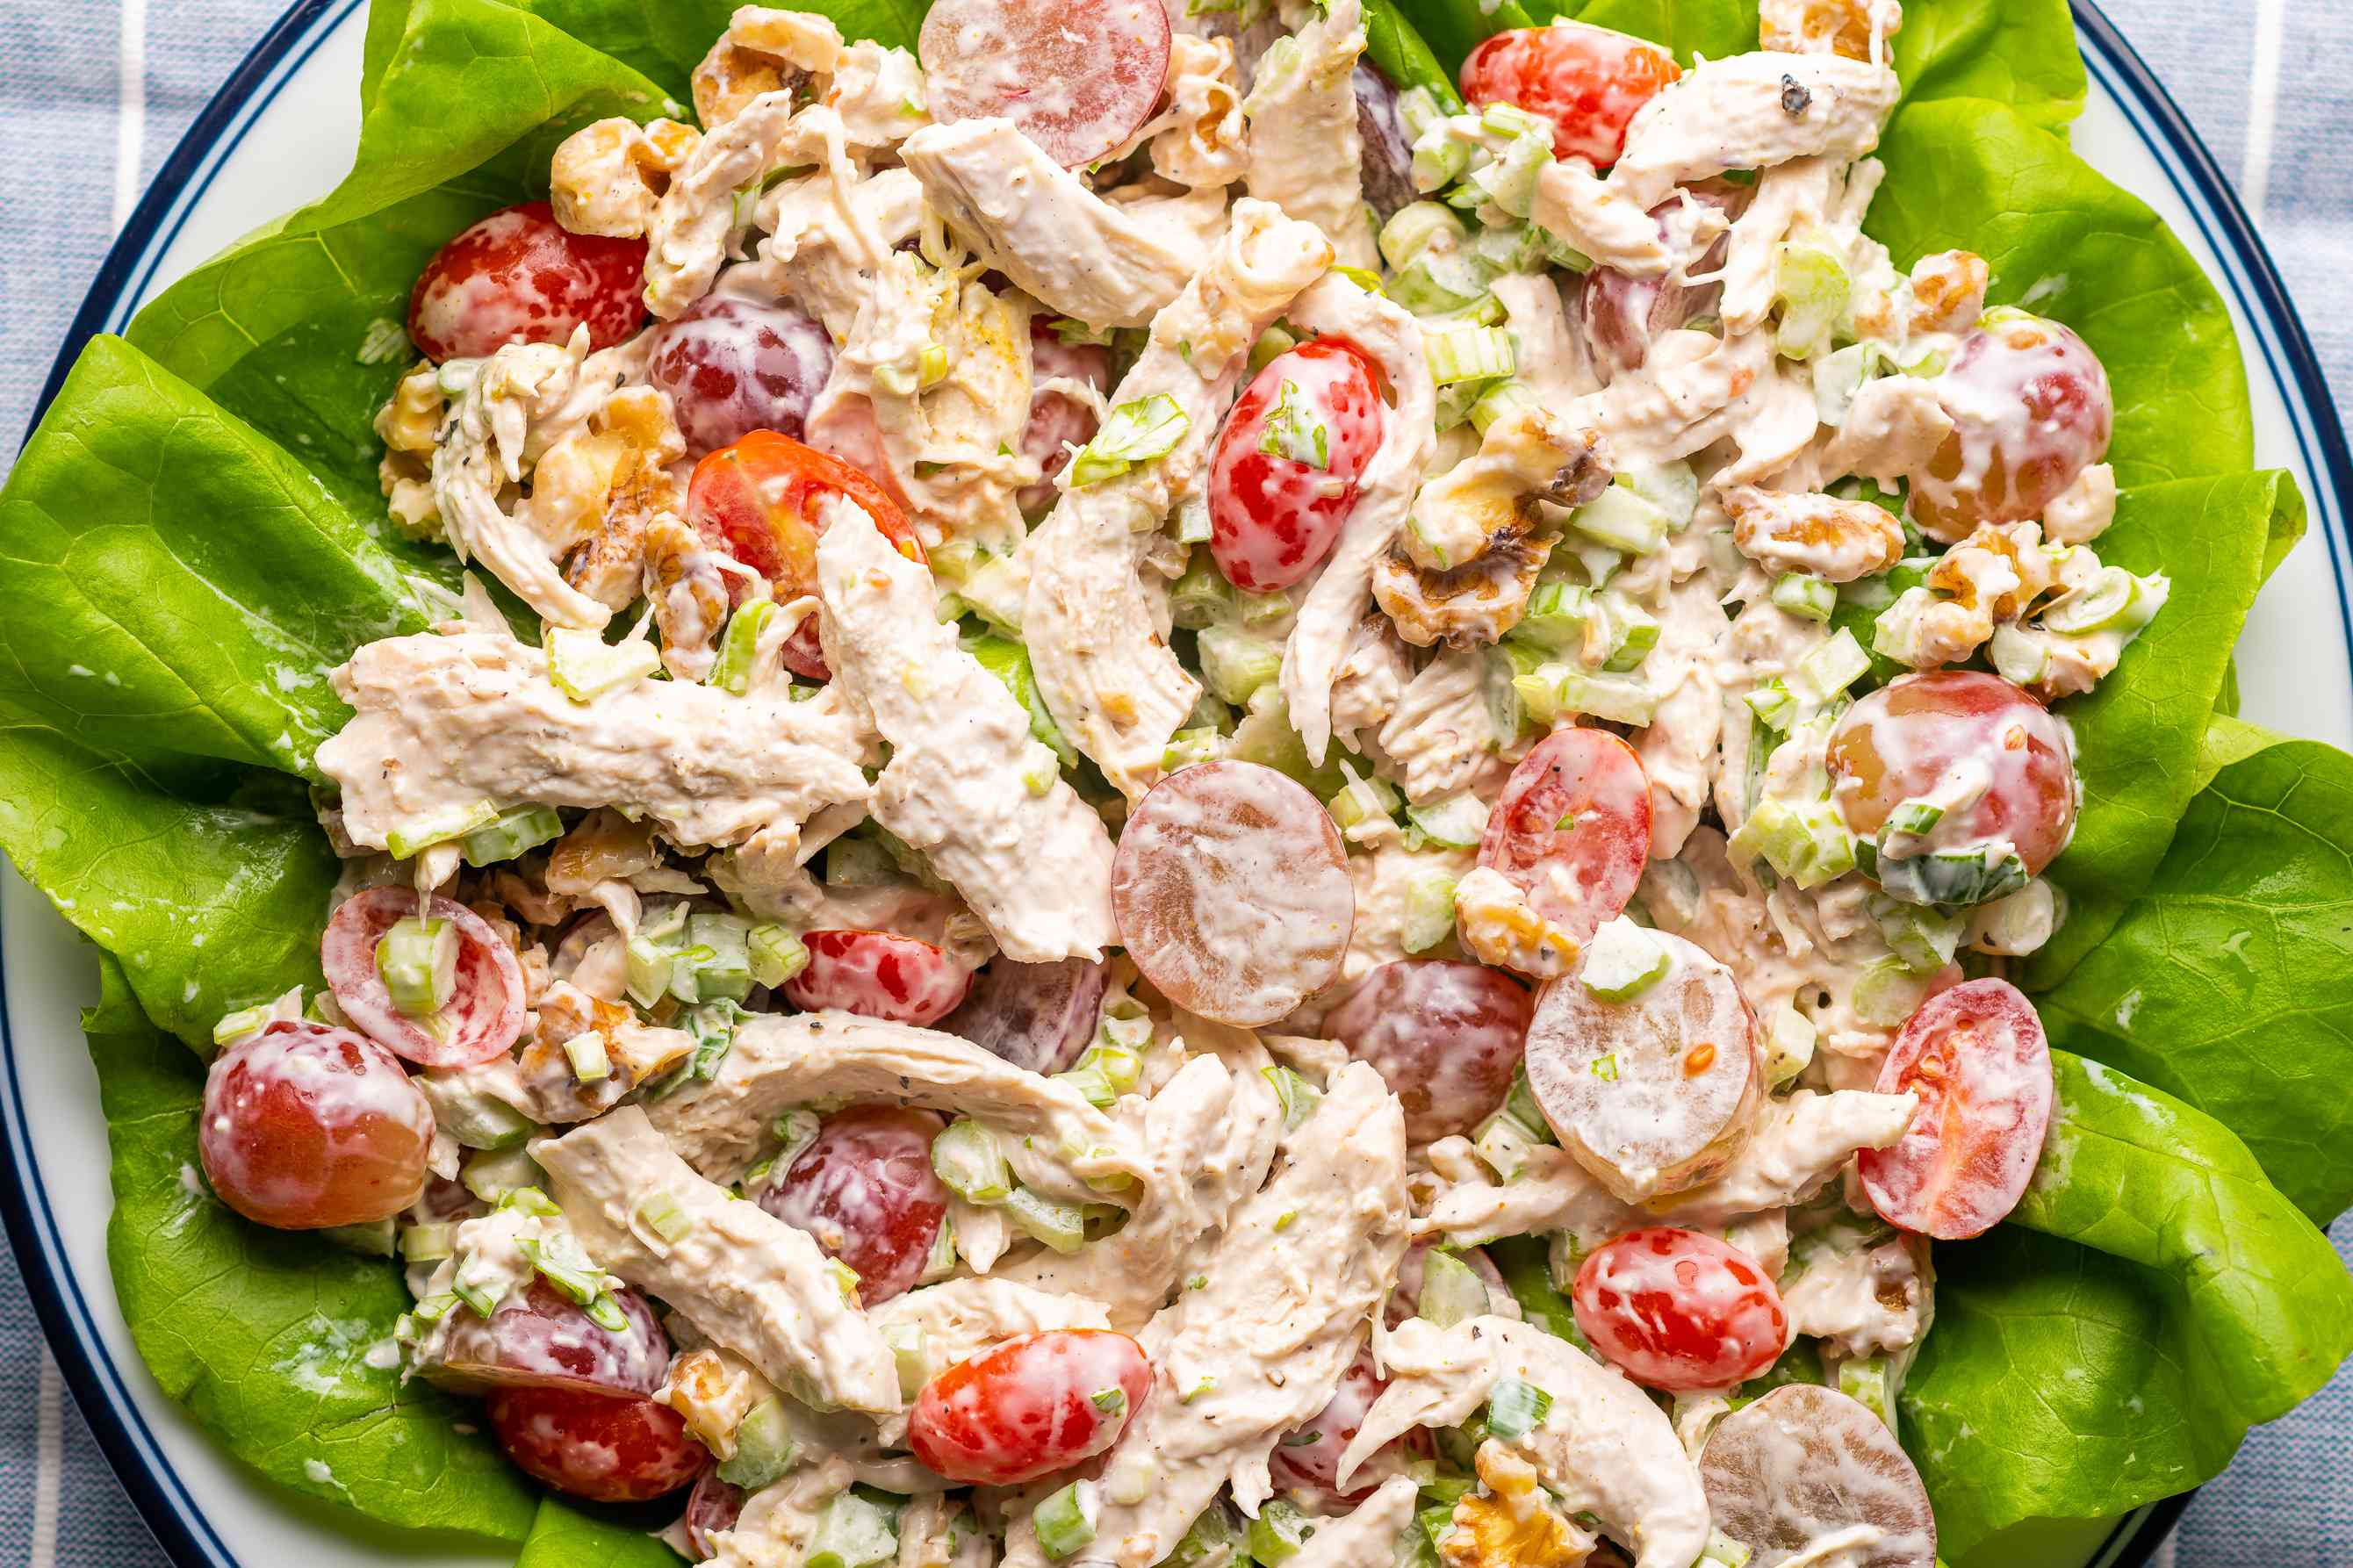 Simple Chicken Salad With Grapes